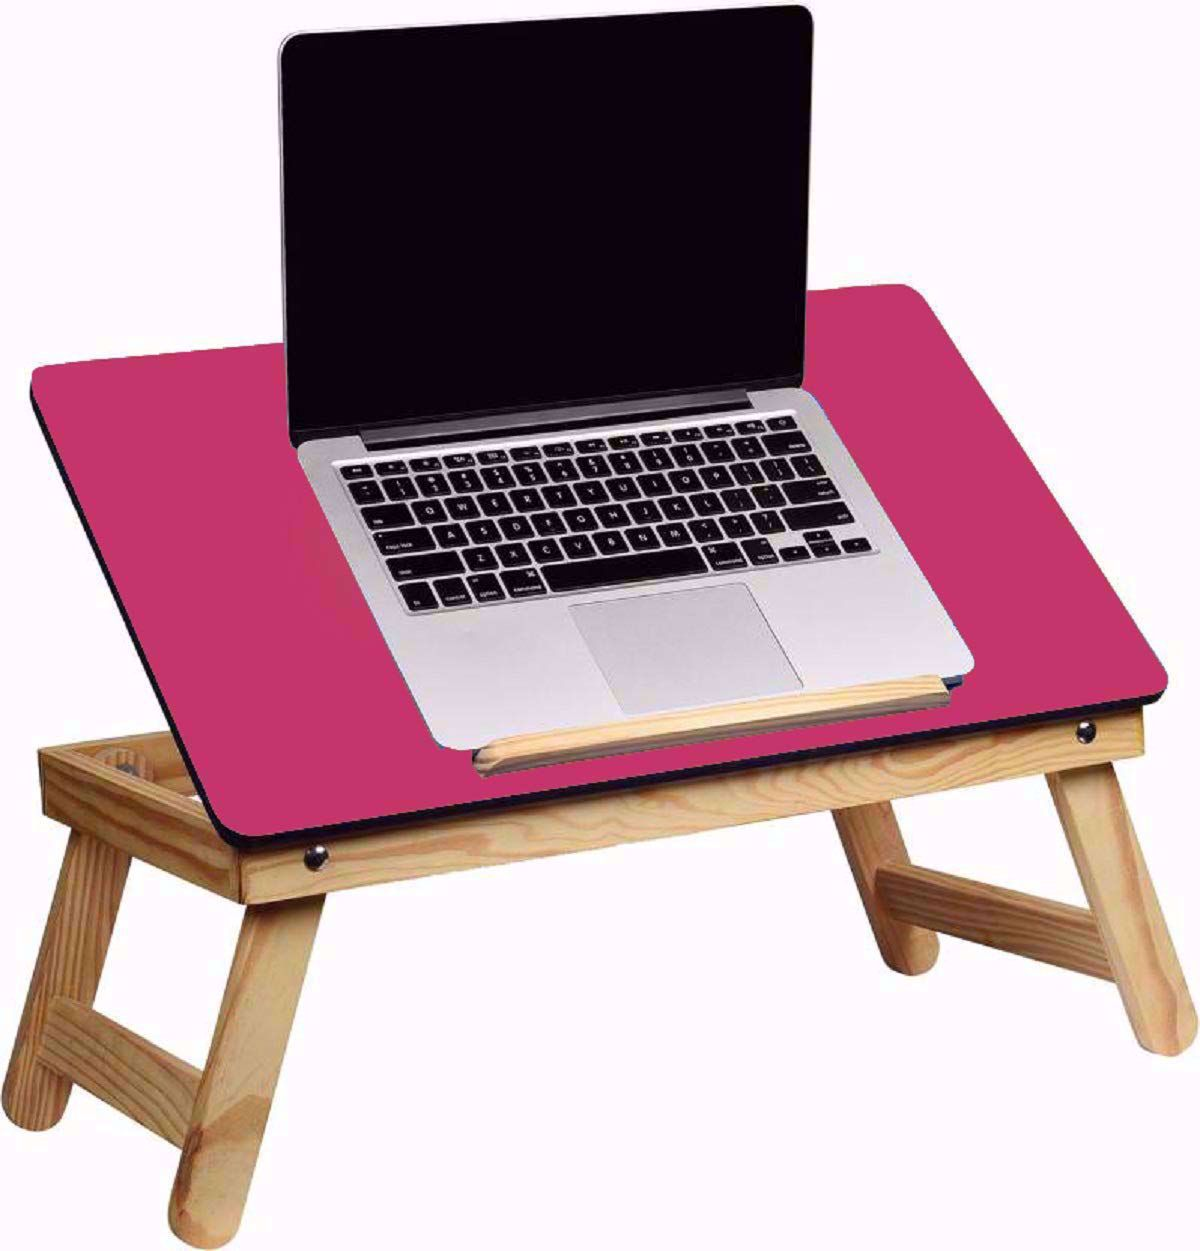 Laptop Desk Bed Student Study Meal Table -Pink